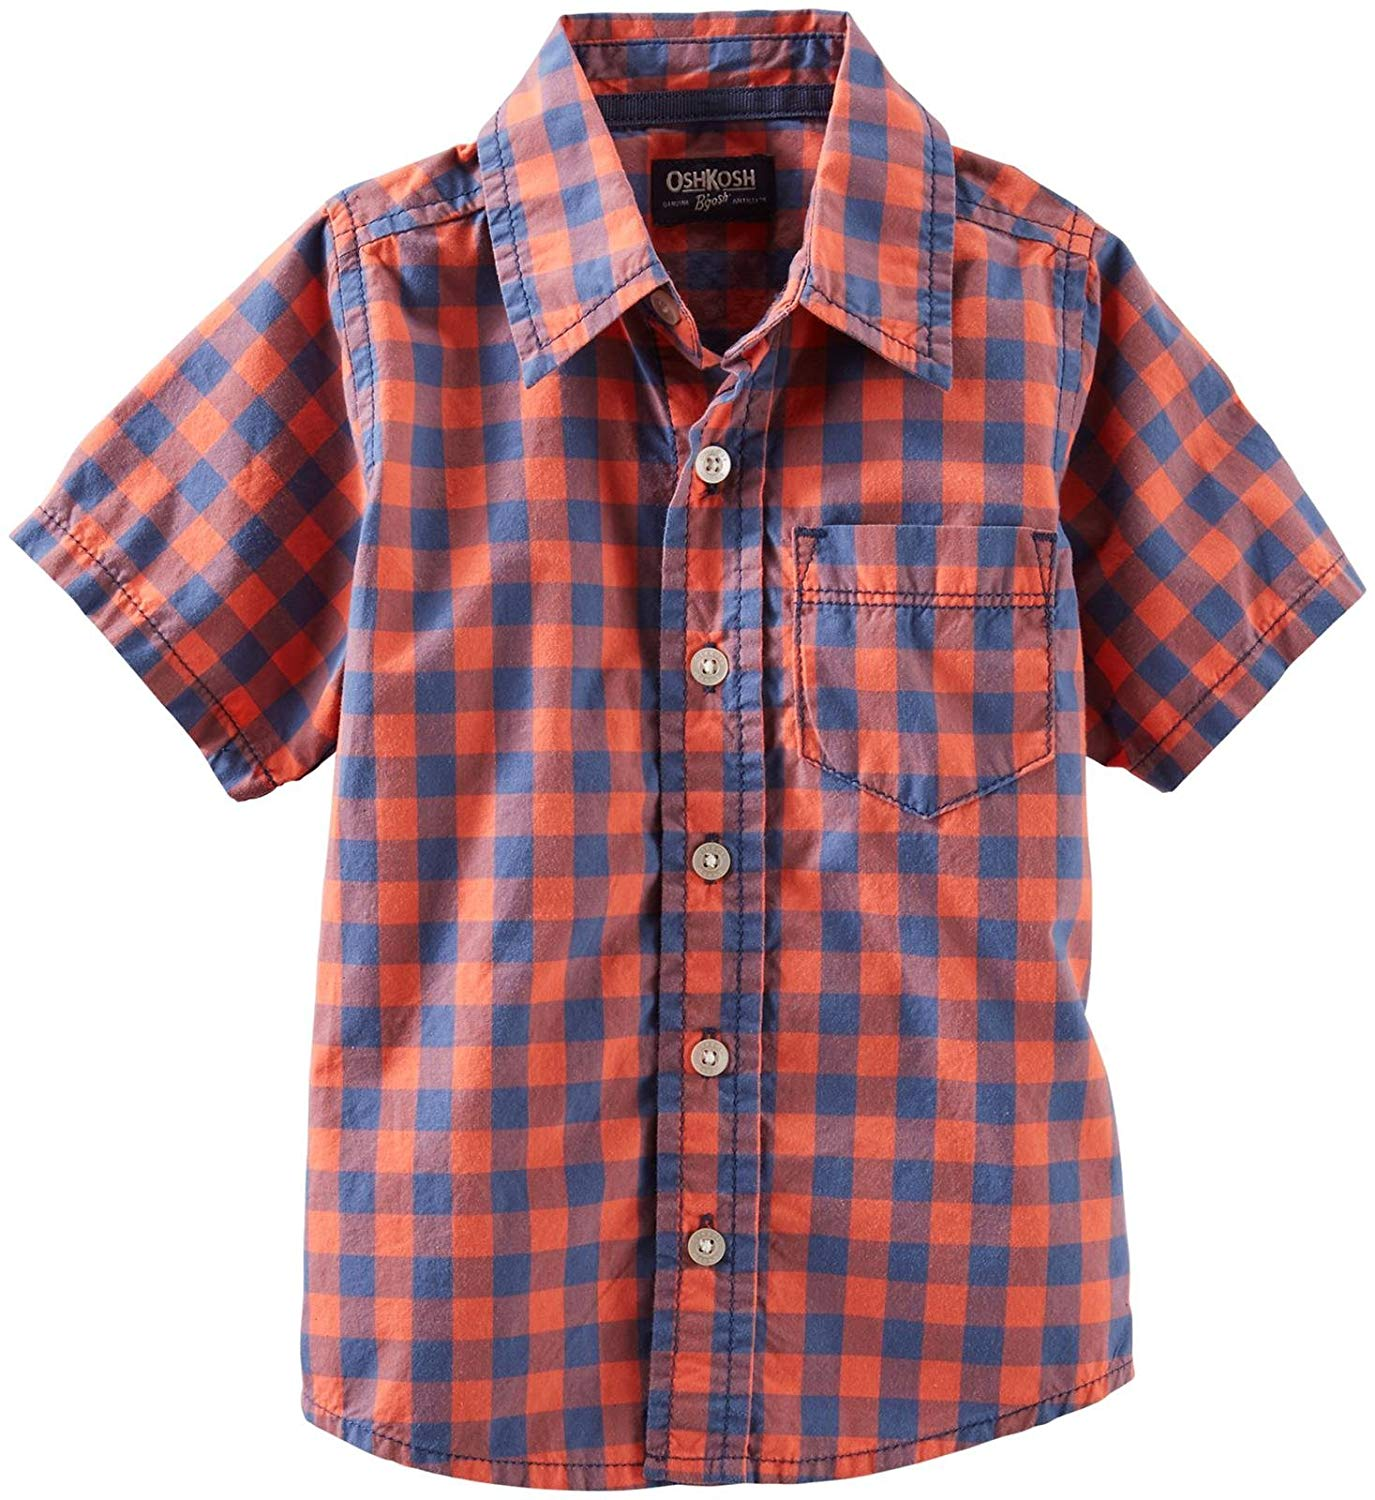 Cheap Red Check Shirt Men Find Red Check Shirt Men Deals On Line At